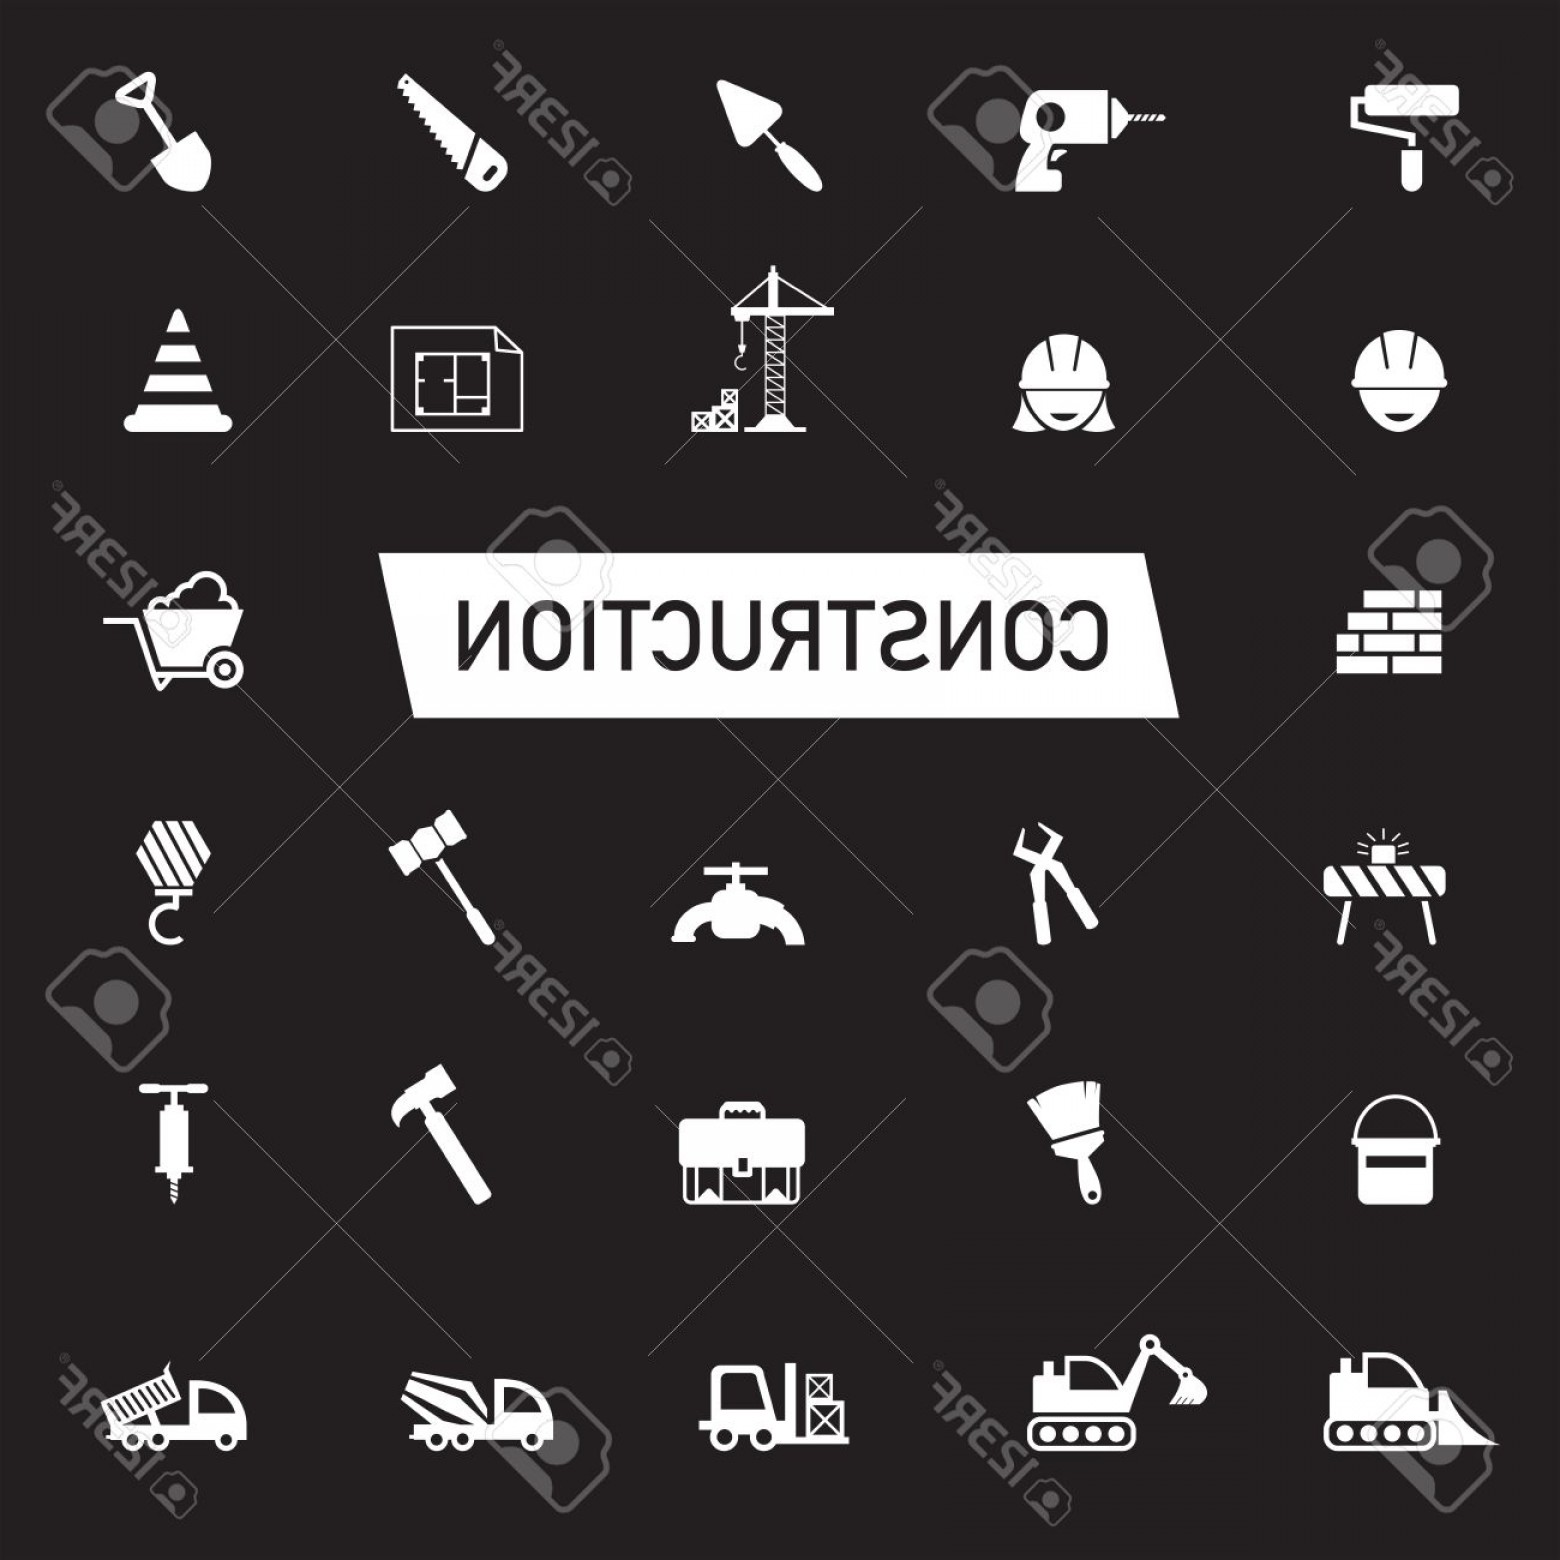 Vector Graphic Of Civil Engineering: Photostock Vector White Silhouette Civil Engineering Maintenance Labor Excavator Transport And Construction Site Indus